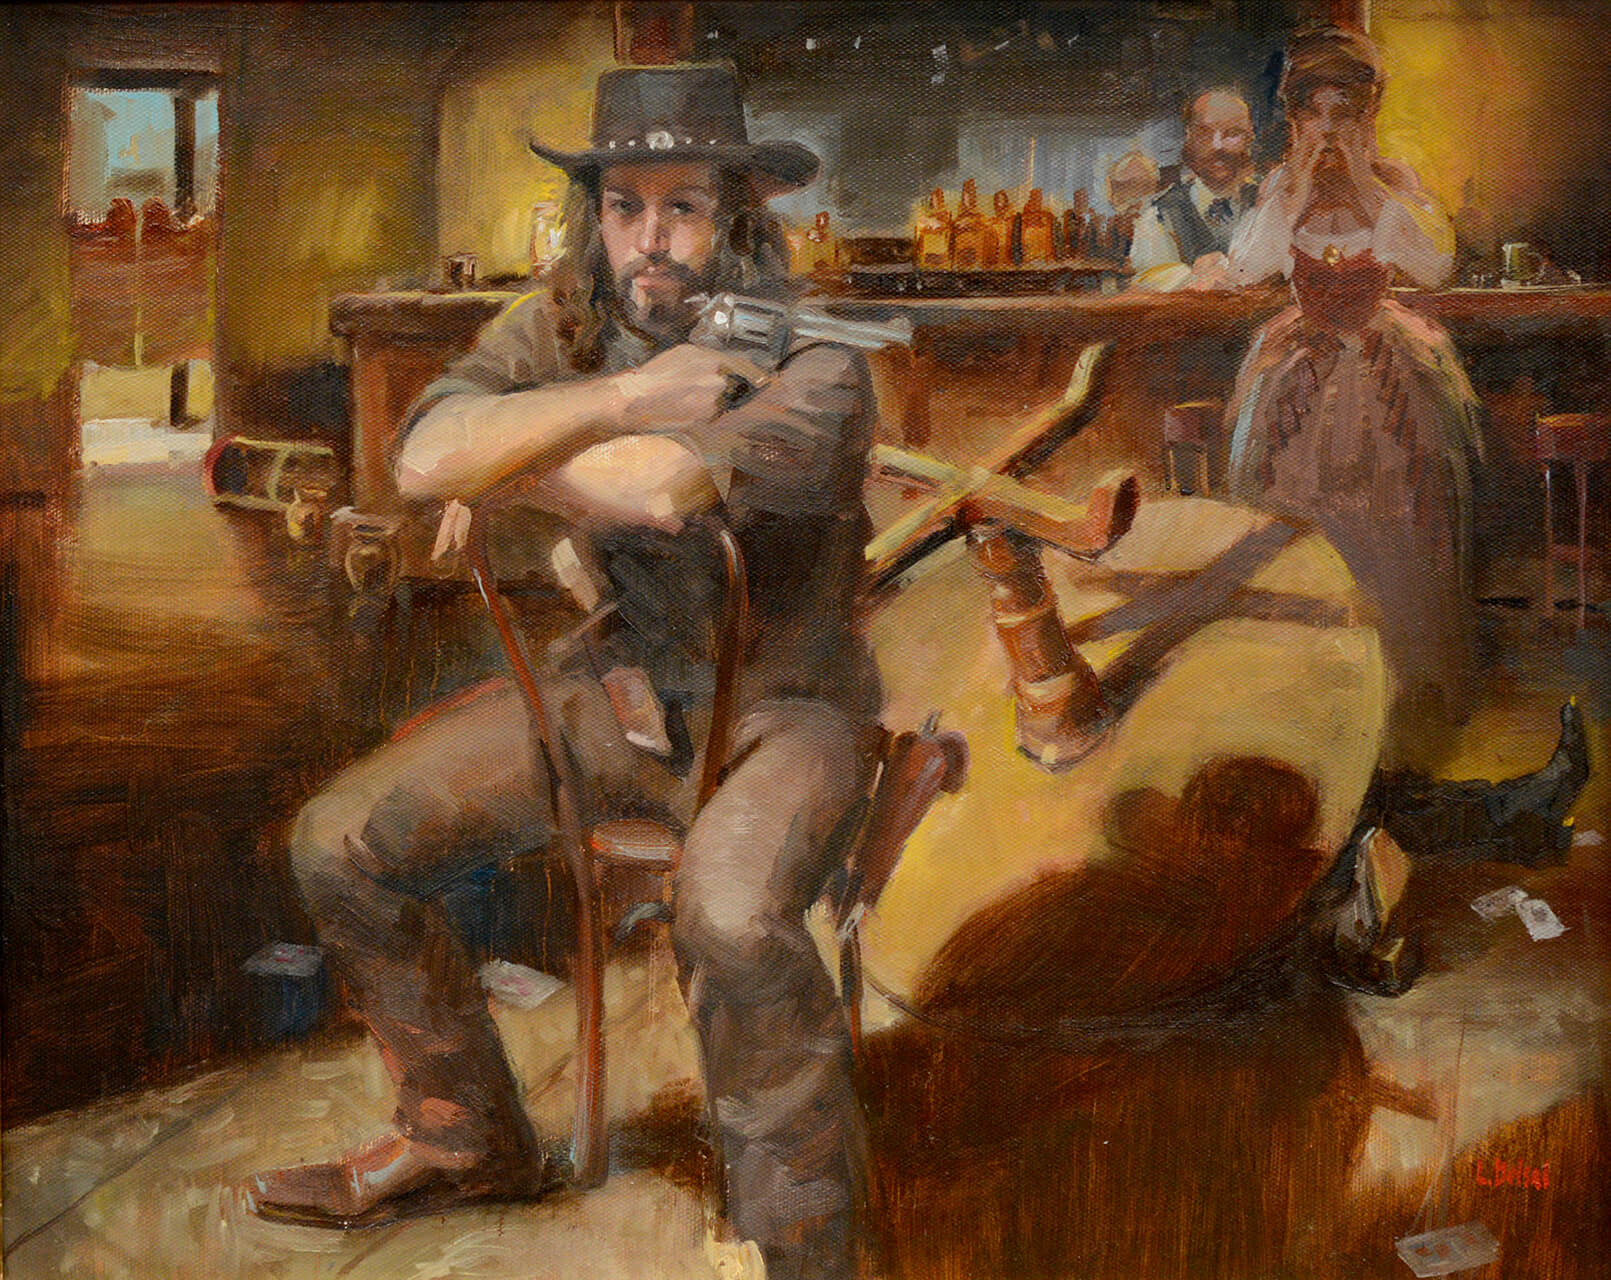 Realistic western themed oil painting of a gunslinger that just killed a guy over a card game with a barmaid and bartender in the background